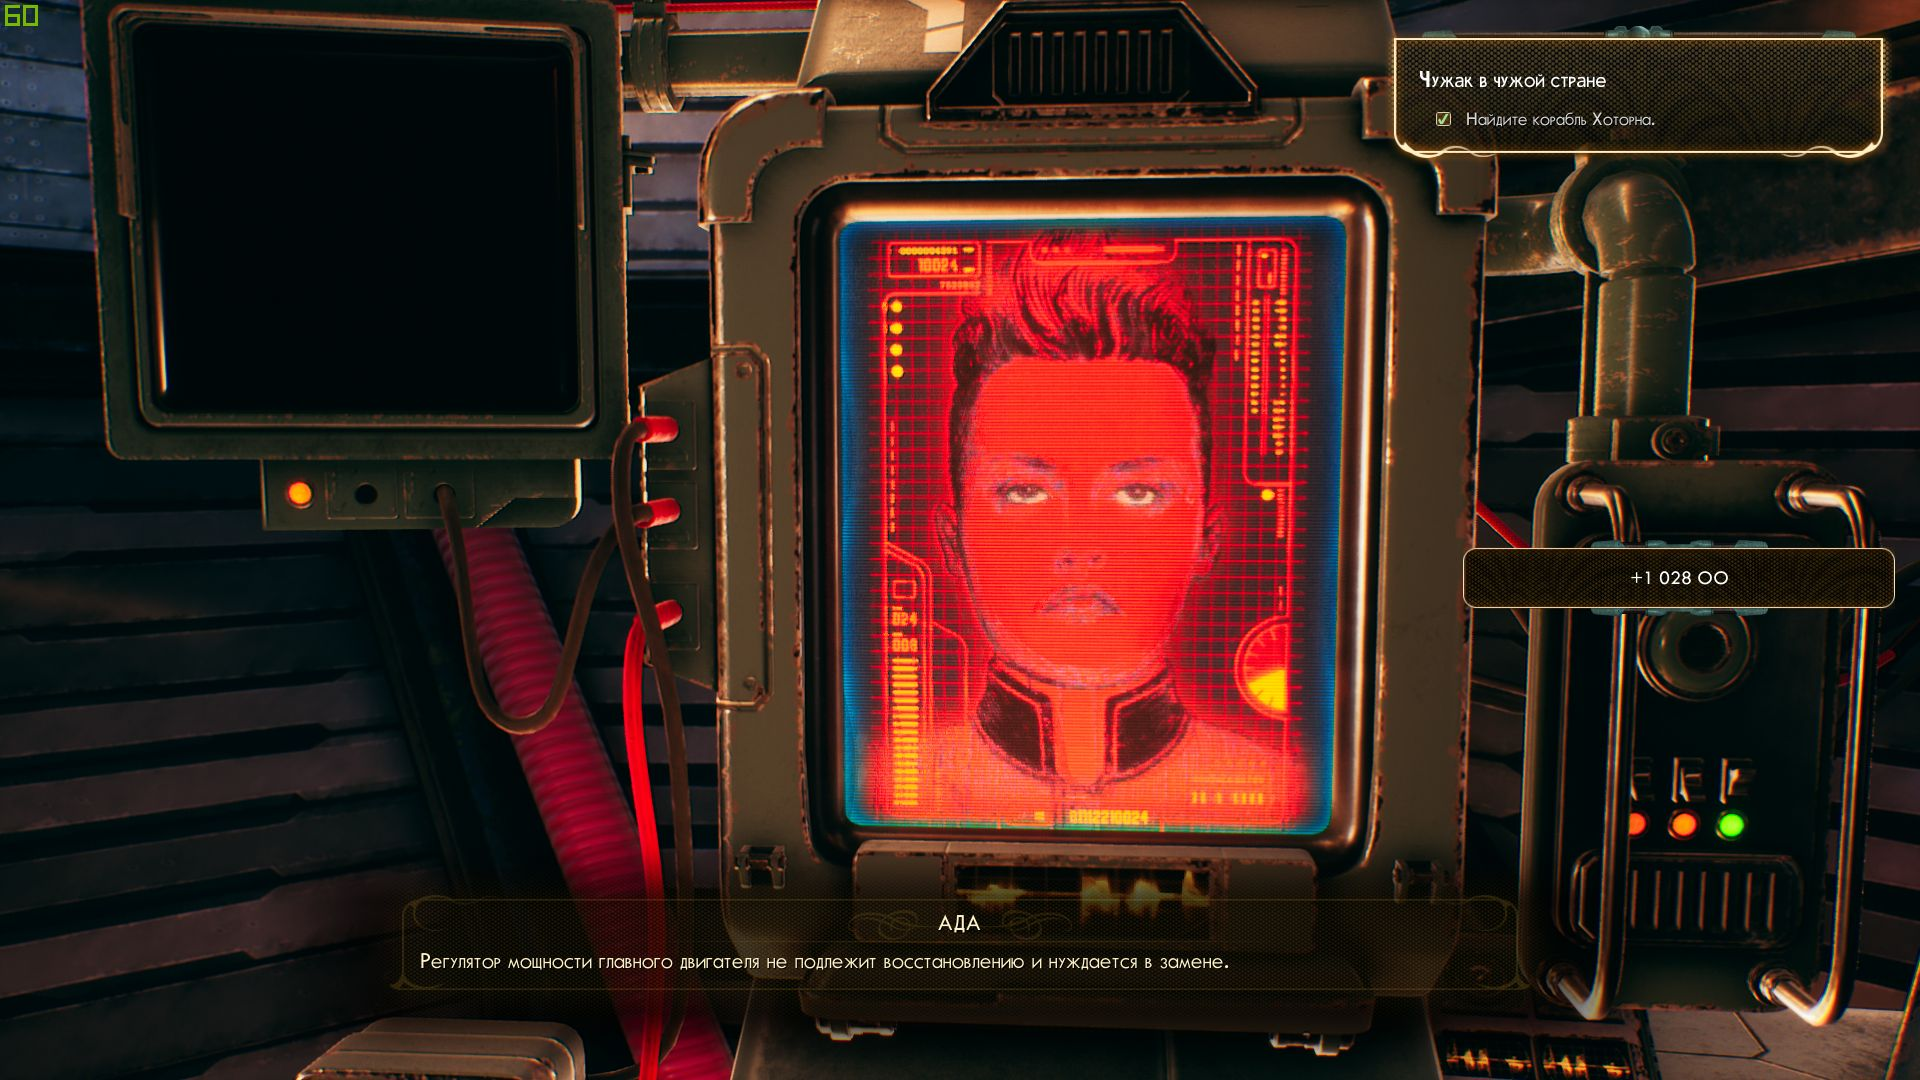 00034.Jpg - Outer Worlds, the